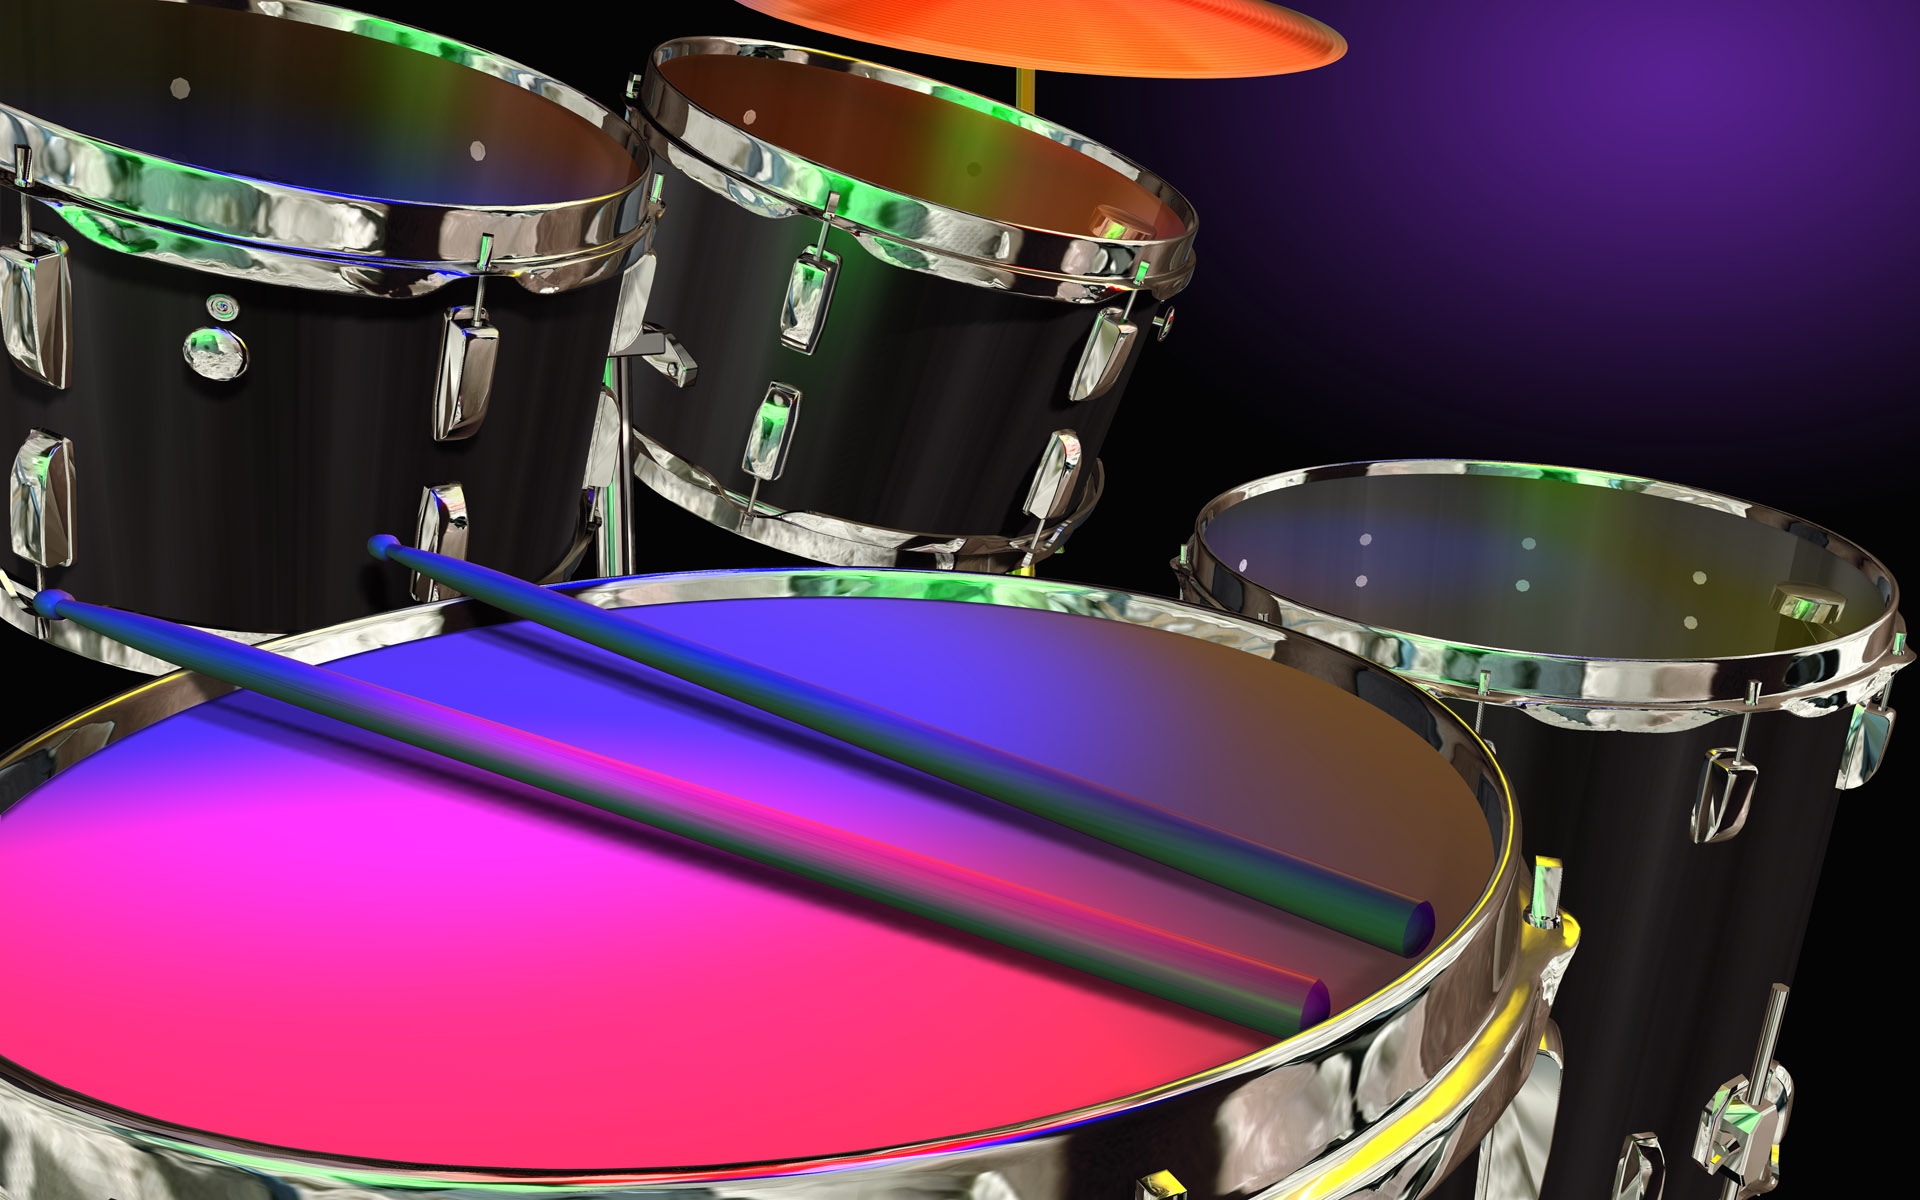 Drums Wallpapers: Drums In Color Stock Photos